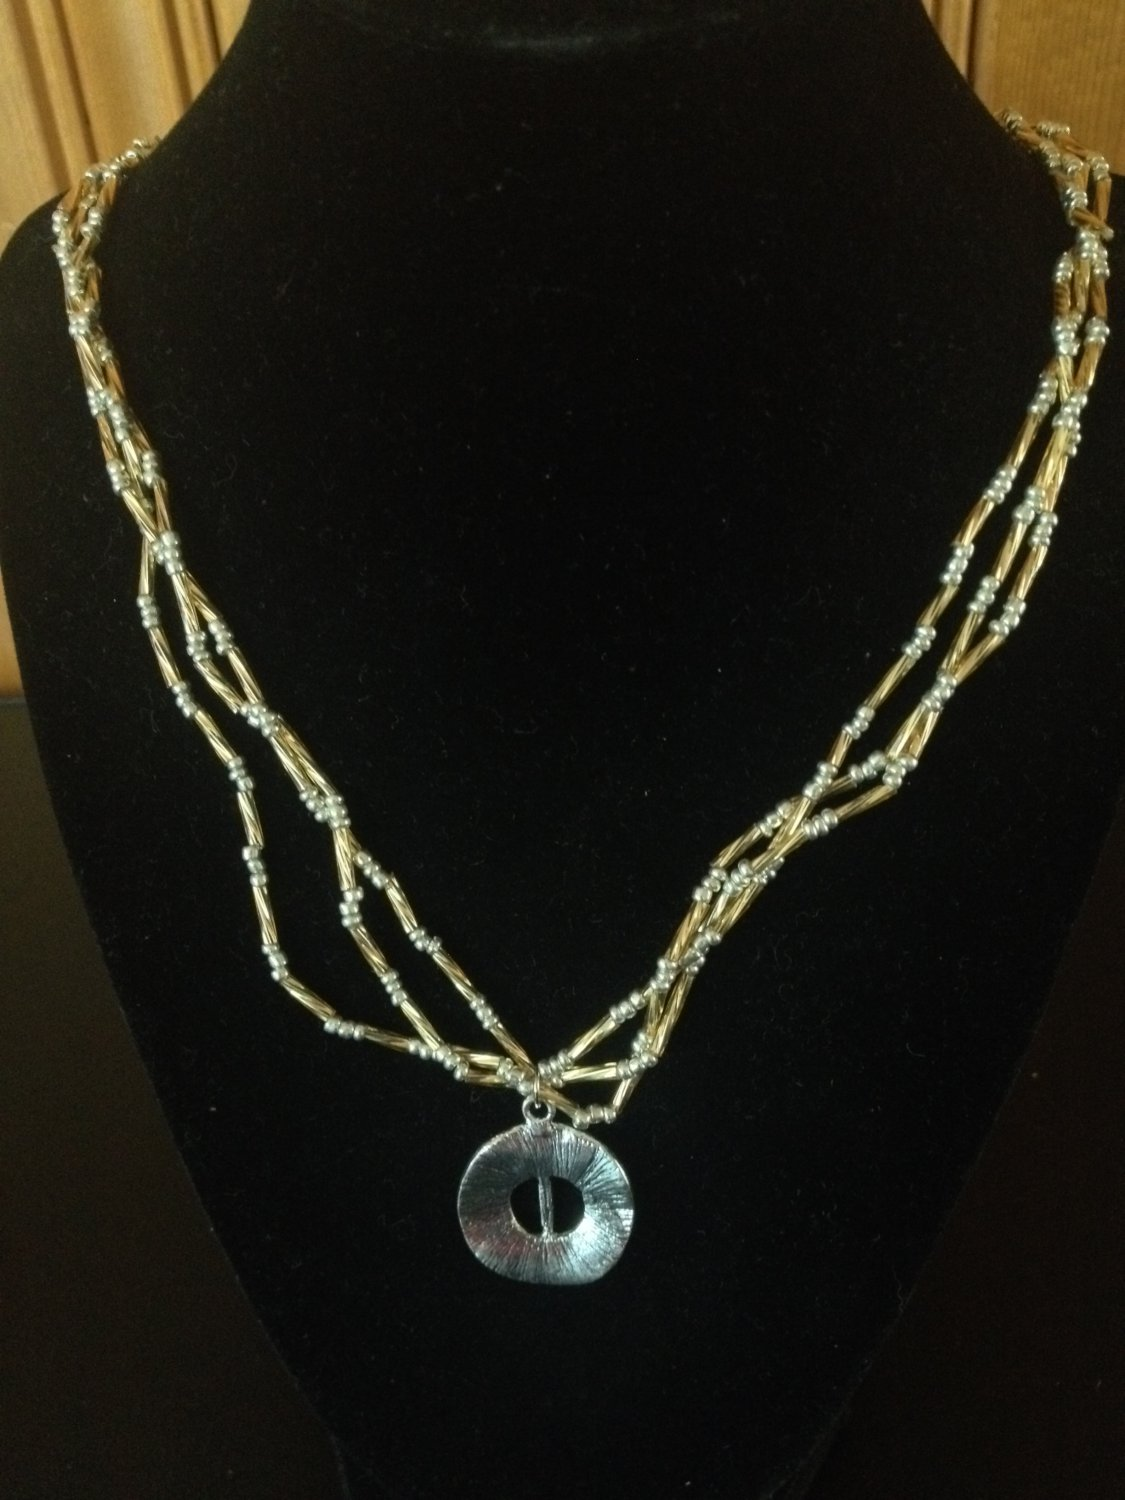 Silver and Gold Beaded Necklace with silver pendant